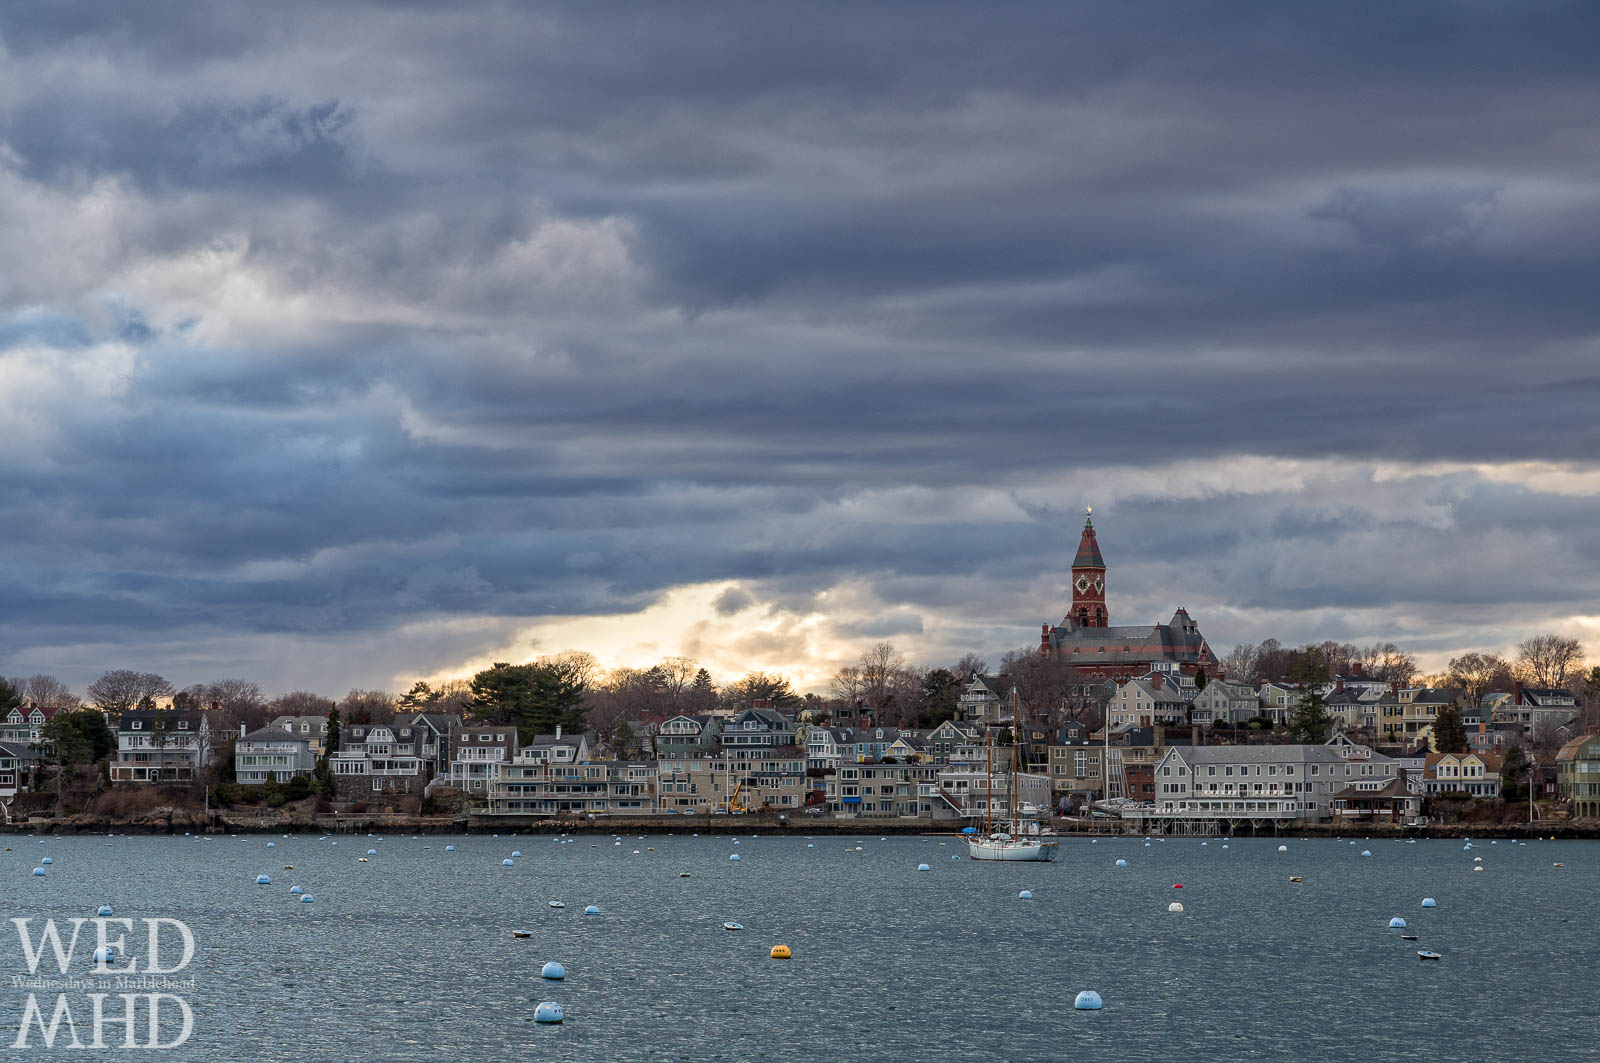 Houses along Marblehead Harbor appear in perfect clarity as a break in the clouds reveals golden light near sunset